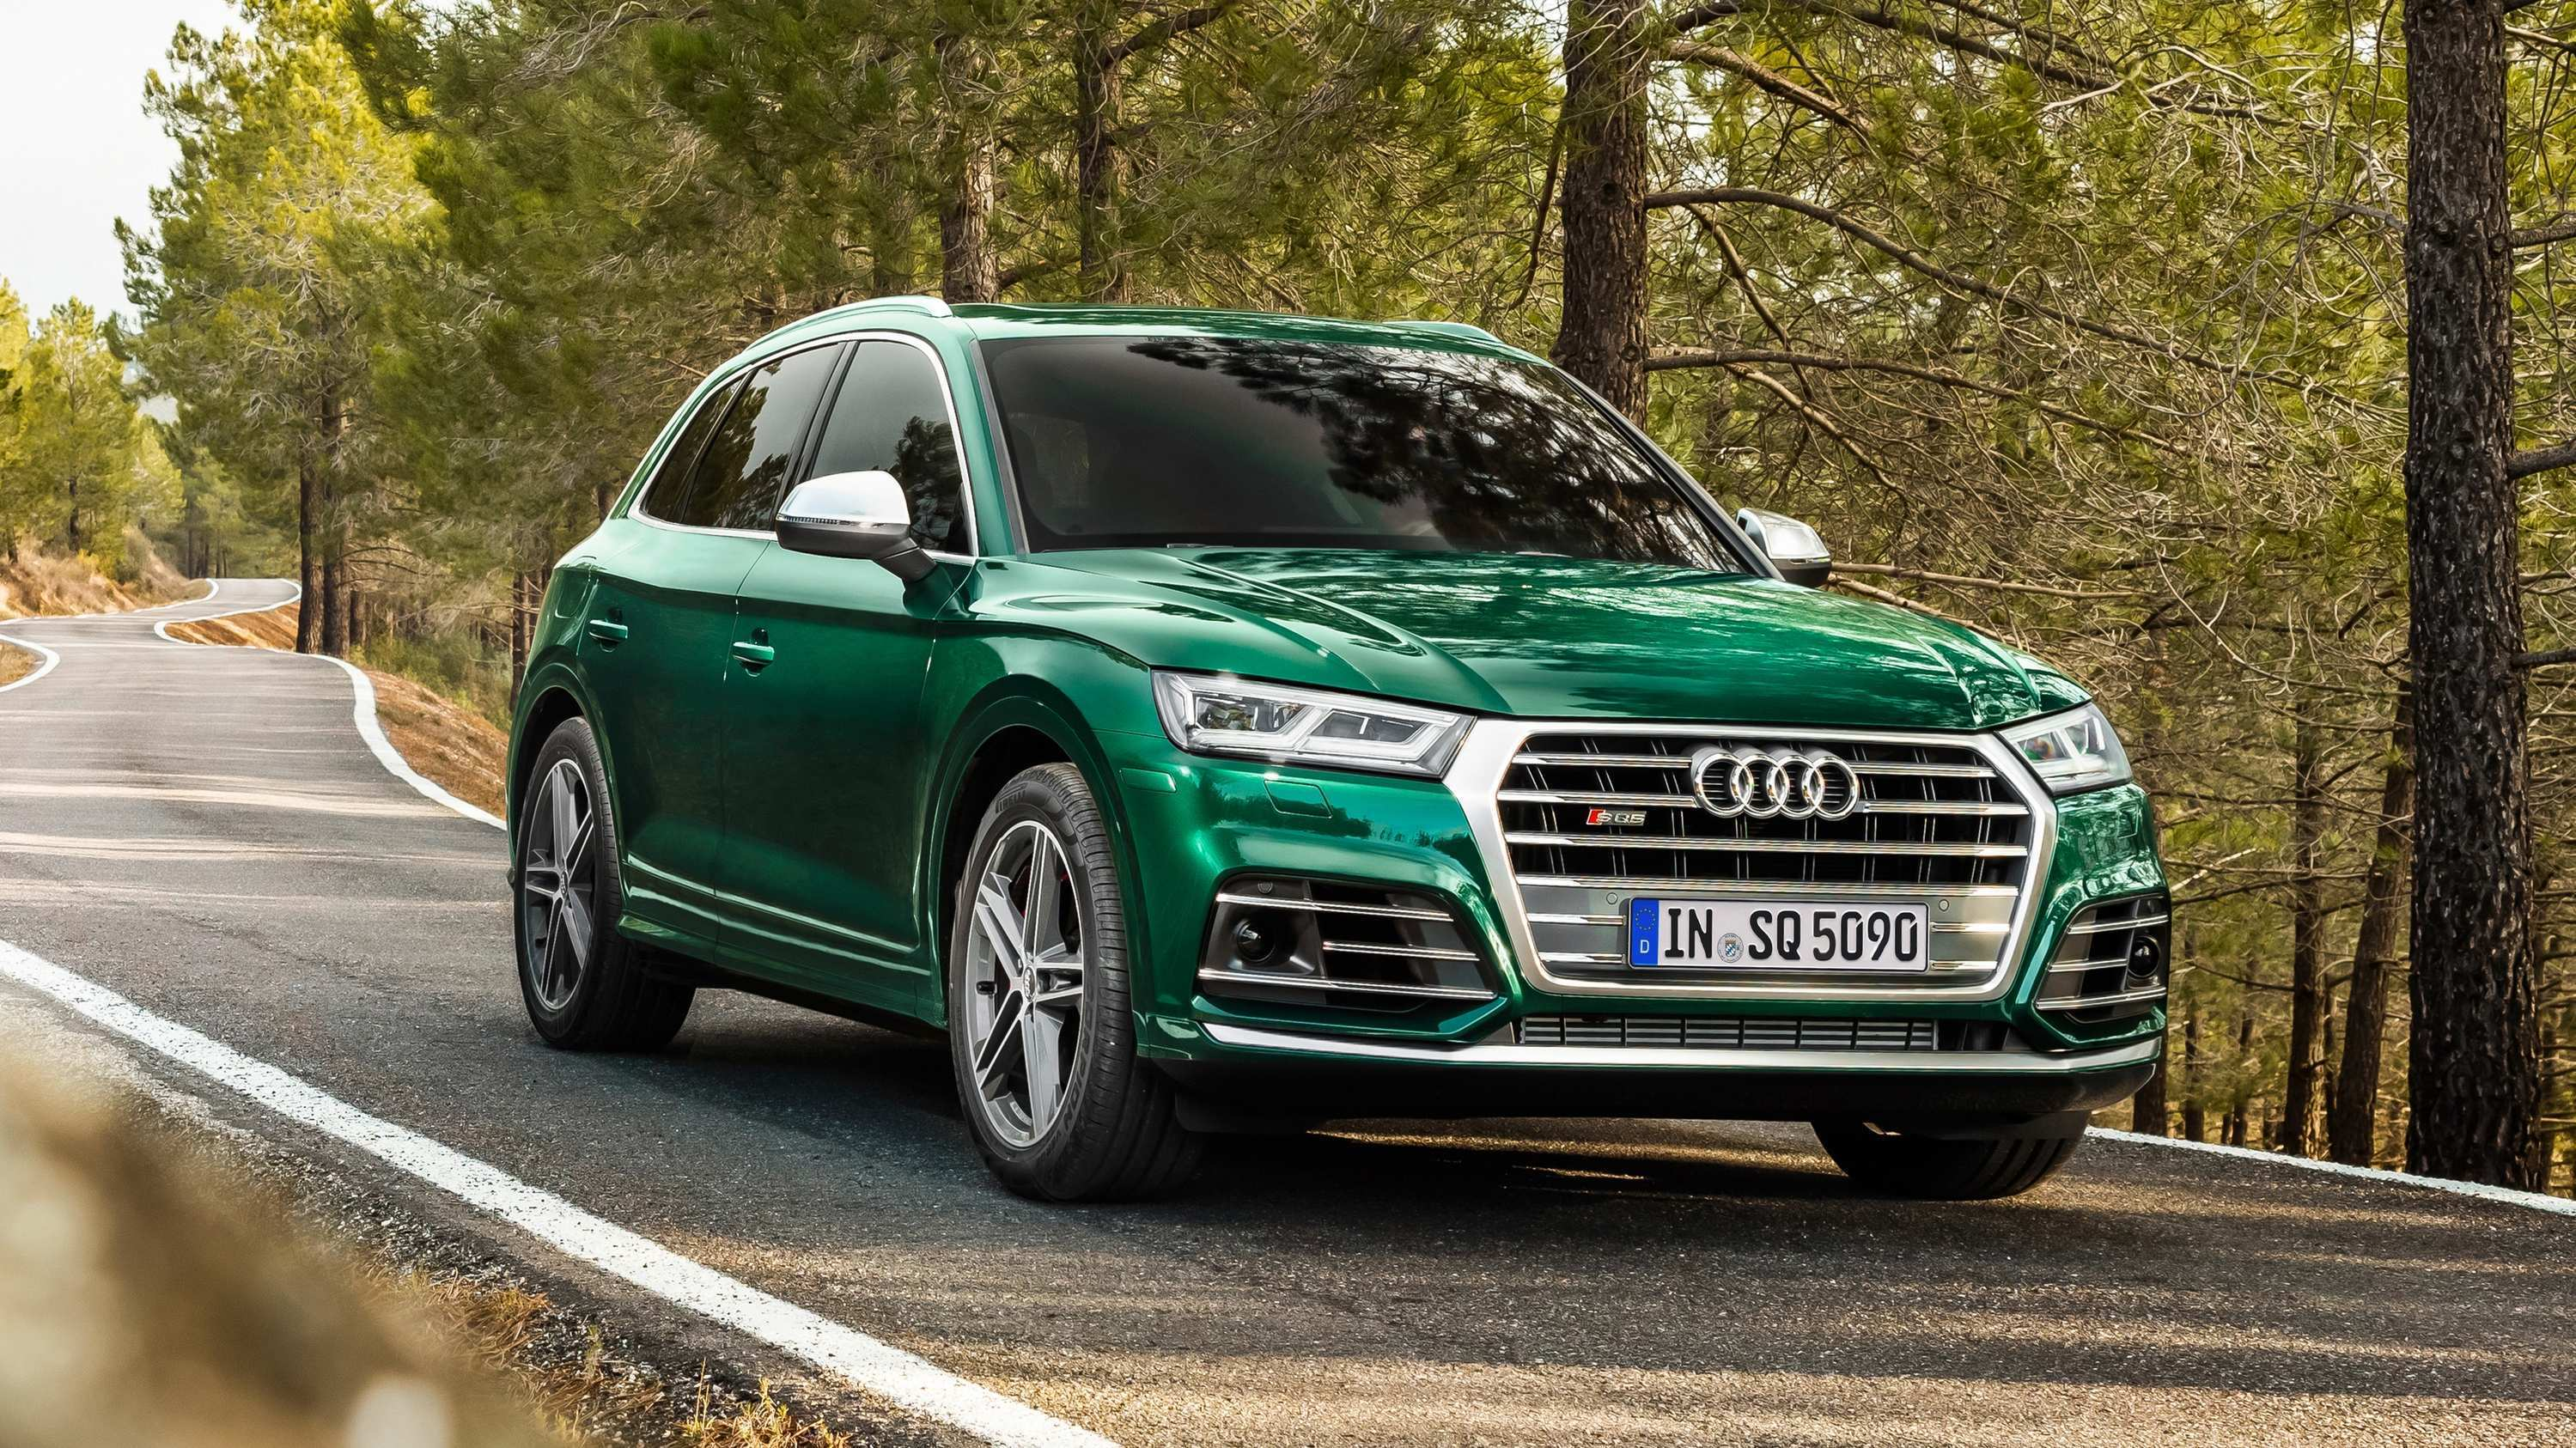 34 New 2019 Audi Green Picture